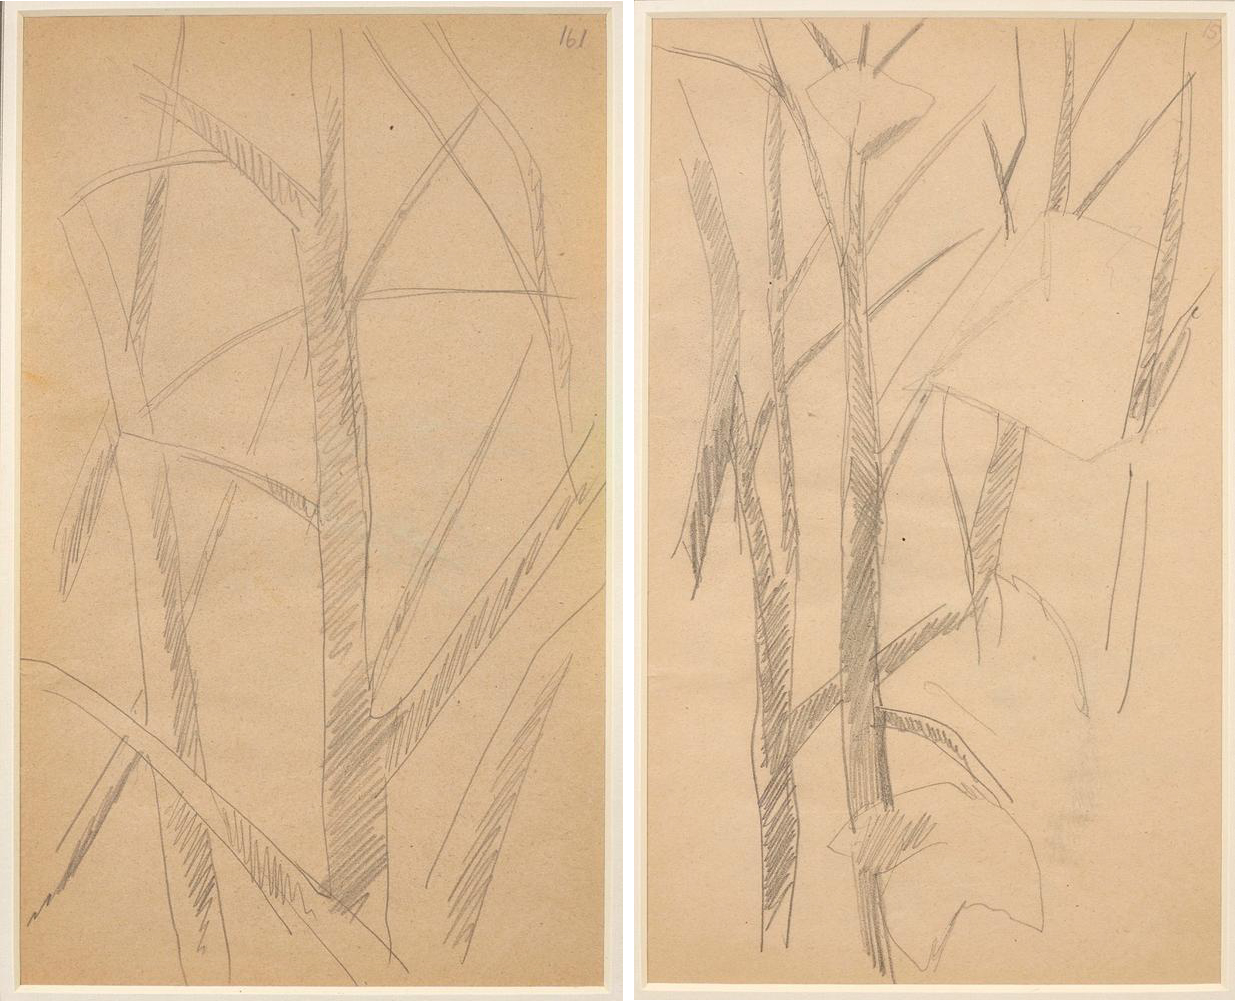 LYUBOV POPOVA (1889-1924) Two Studies of Trees - annotated with numbers '161' and [...]